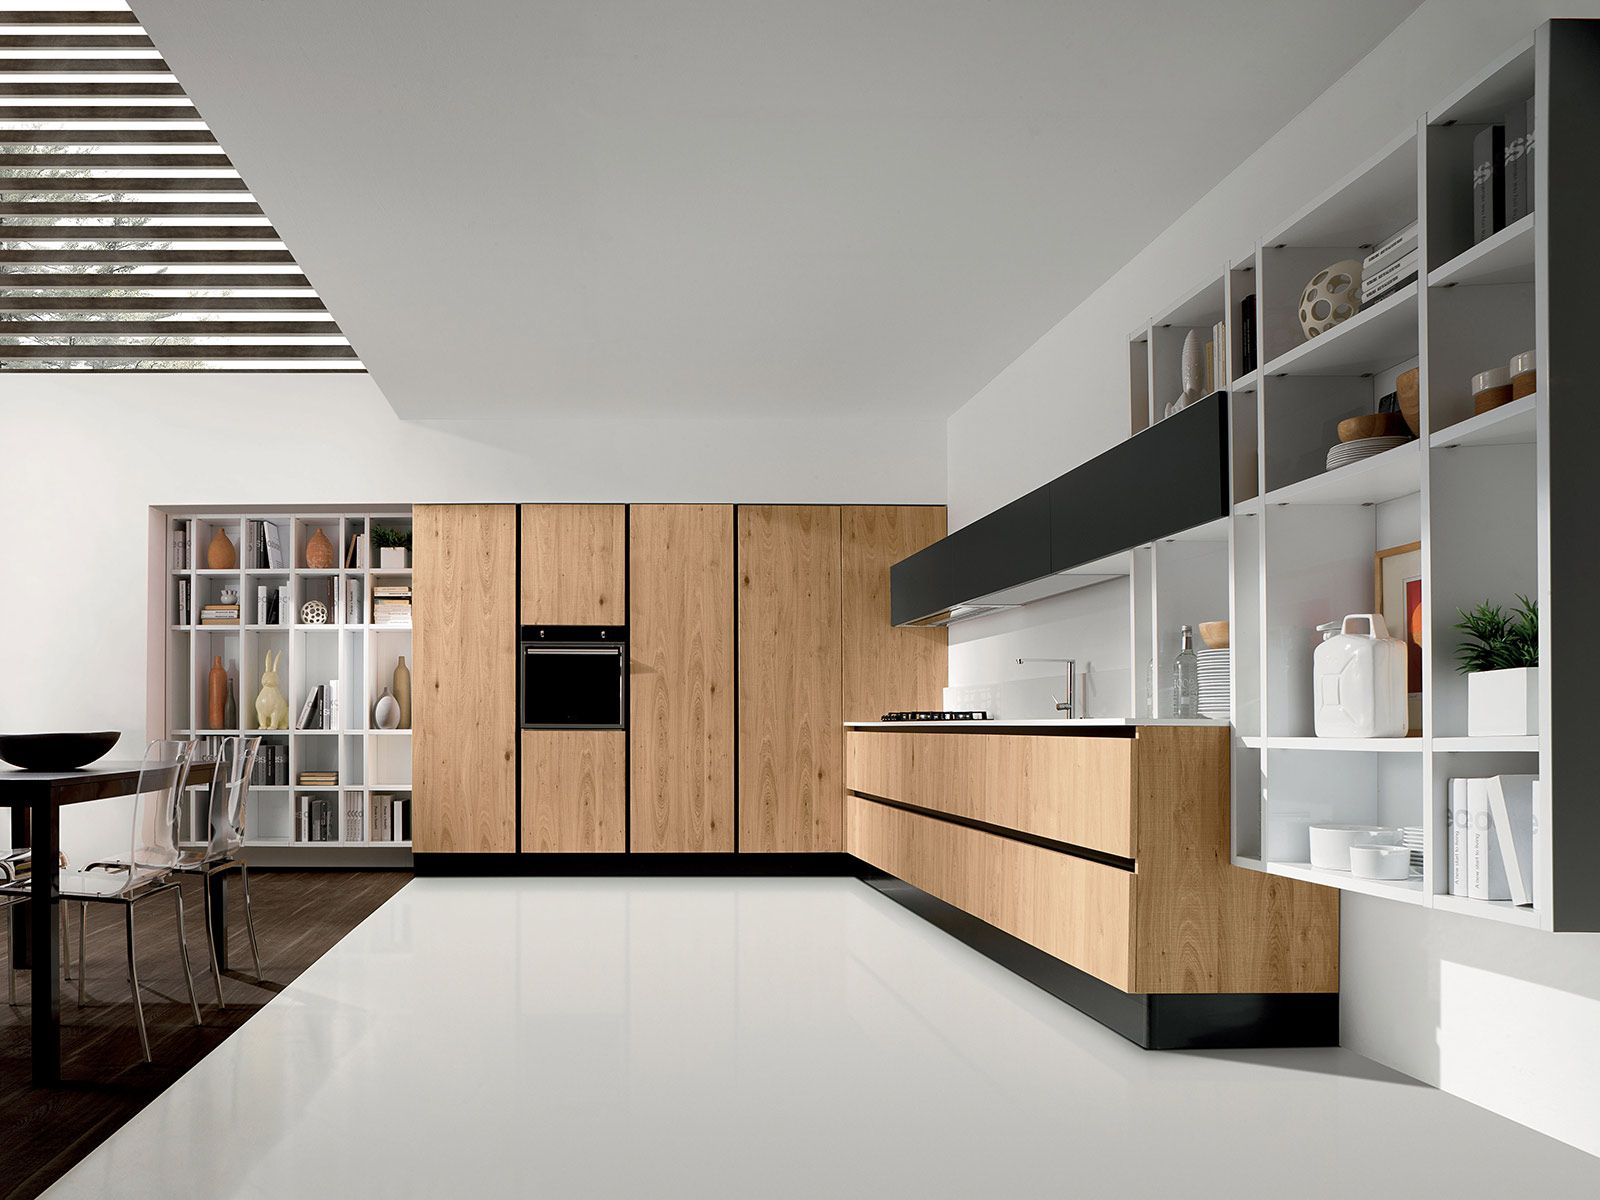 Cucine moderne in legno | Modern kitchen inspiration, Modern ...